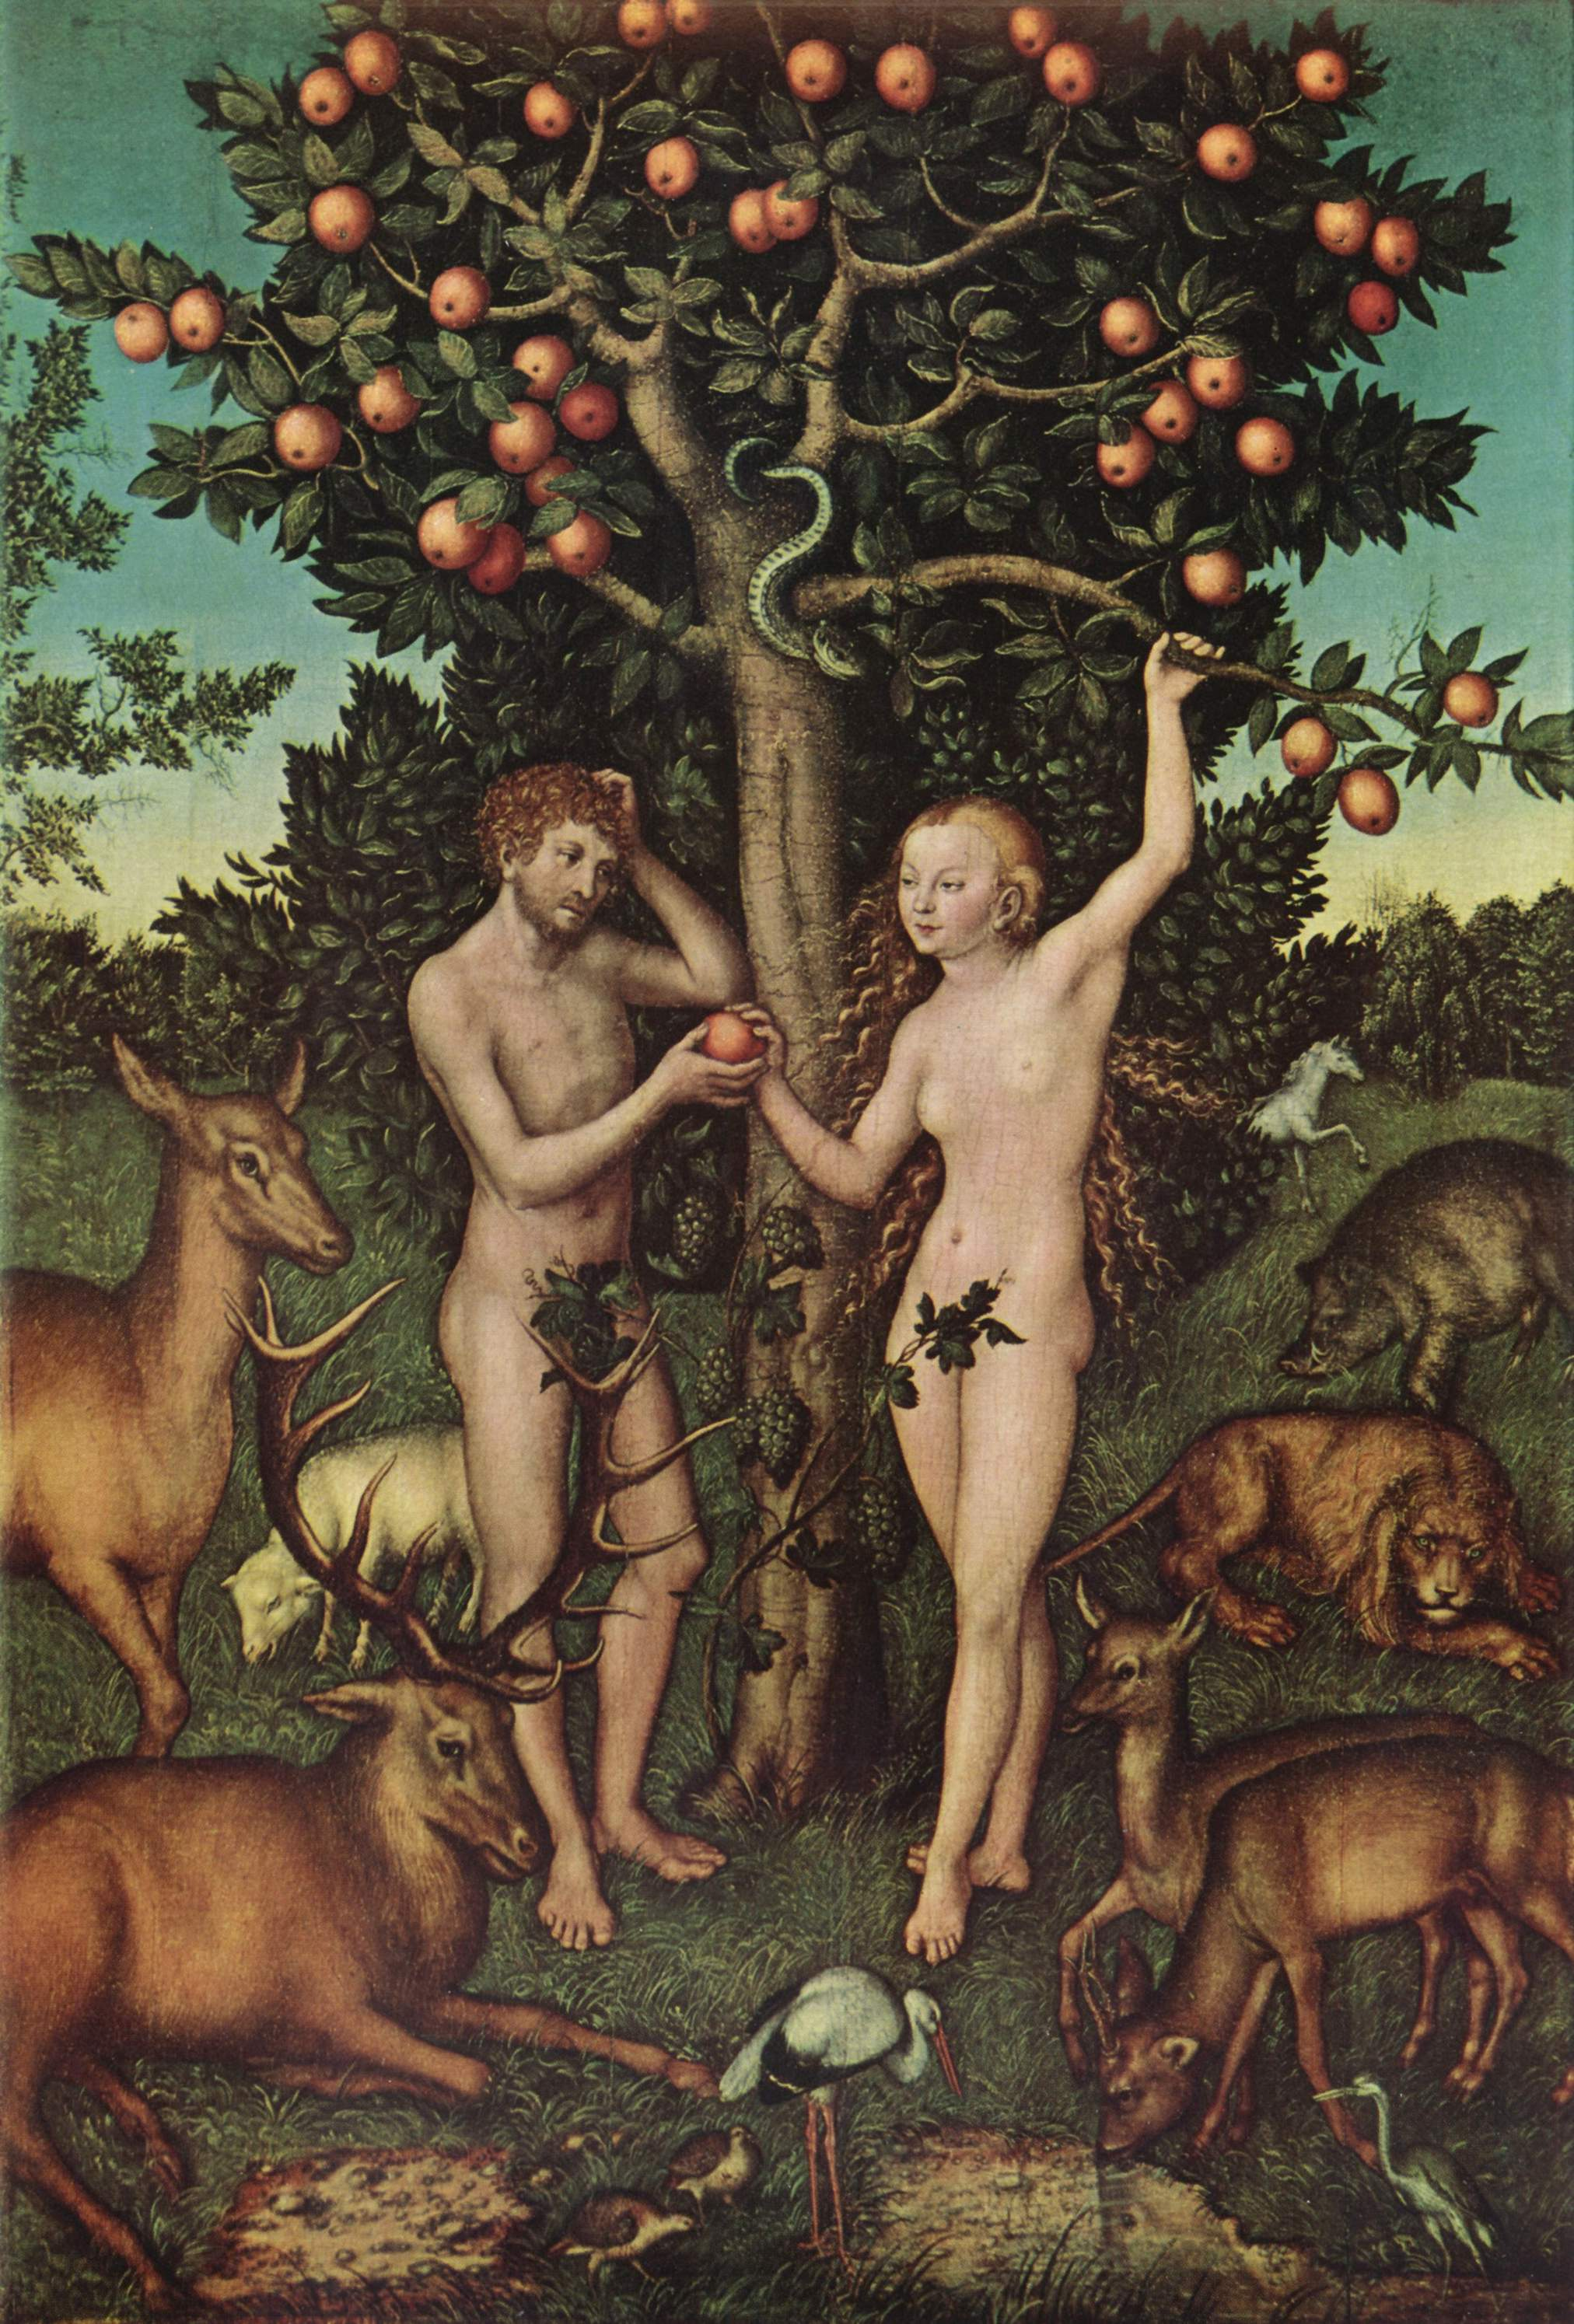 Lucas Cranach the Elder, Adam and Eve (Courtauld Gallery)